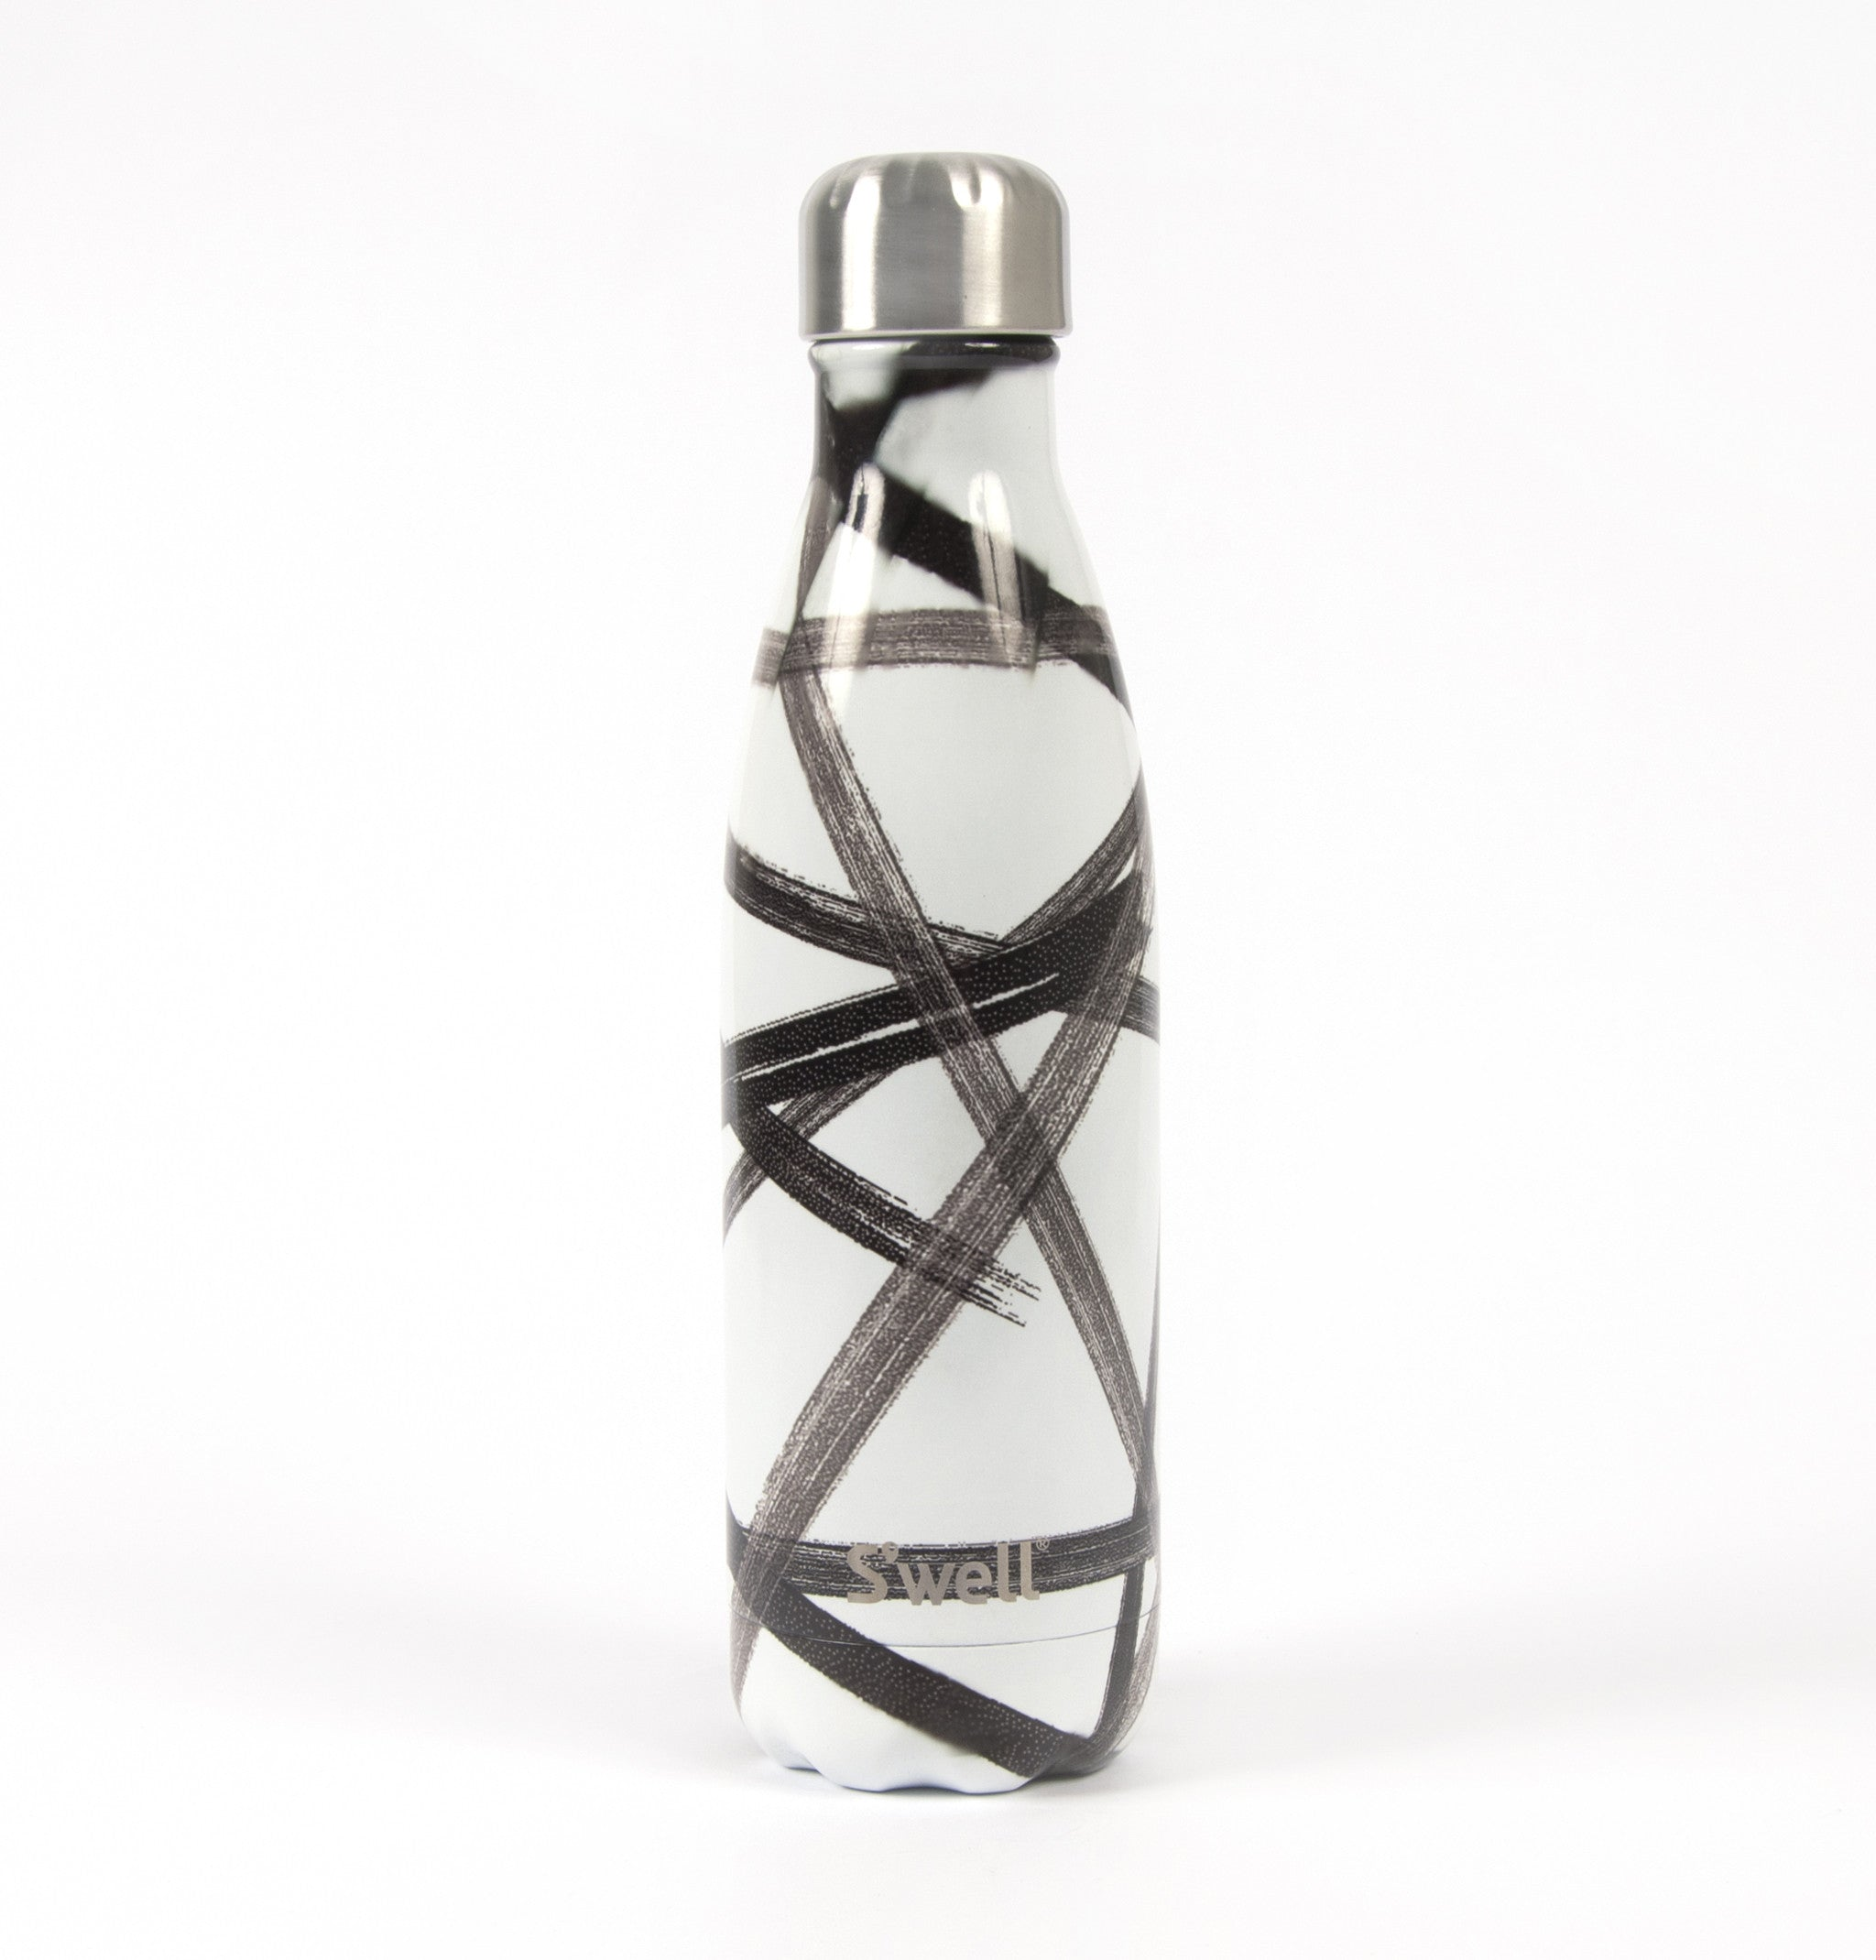 S'Well Bottle 500mL - Black Ribbon Image